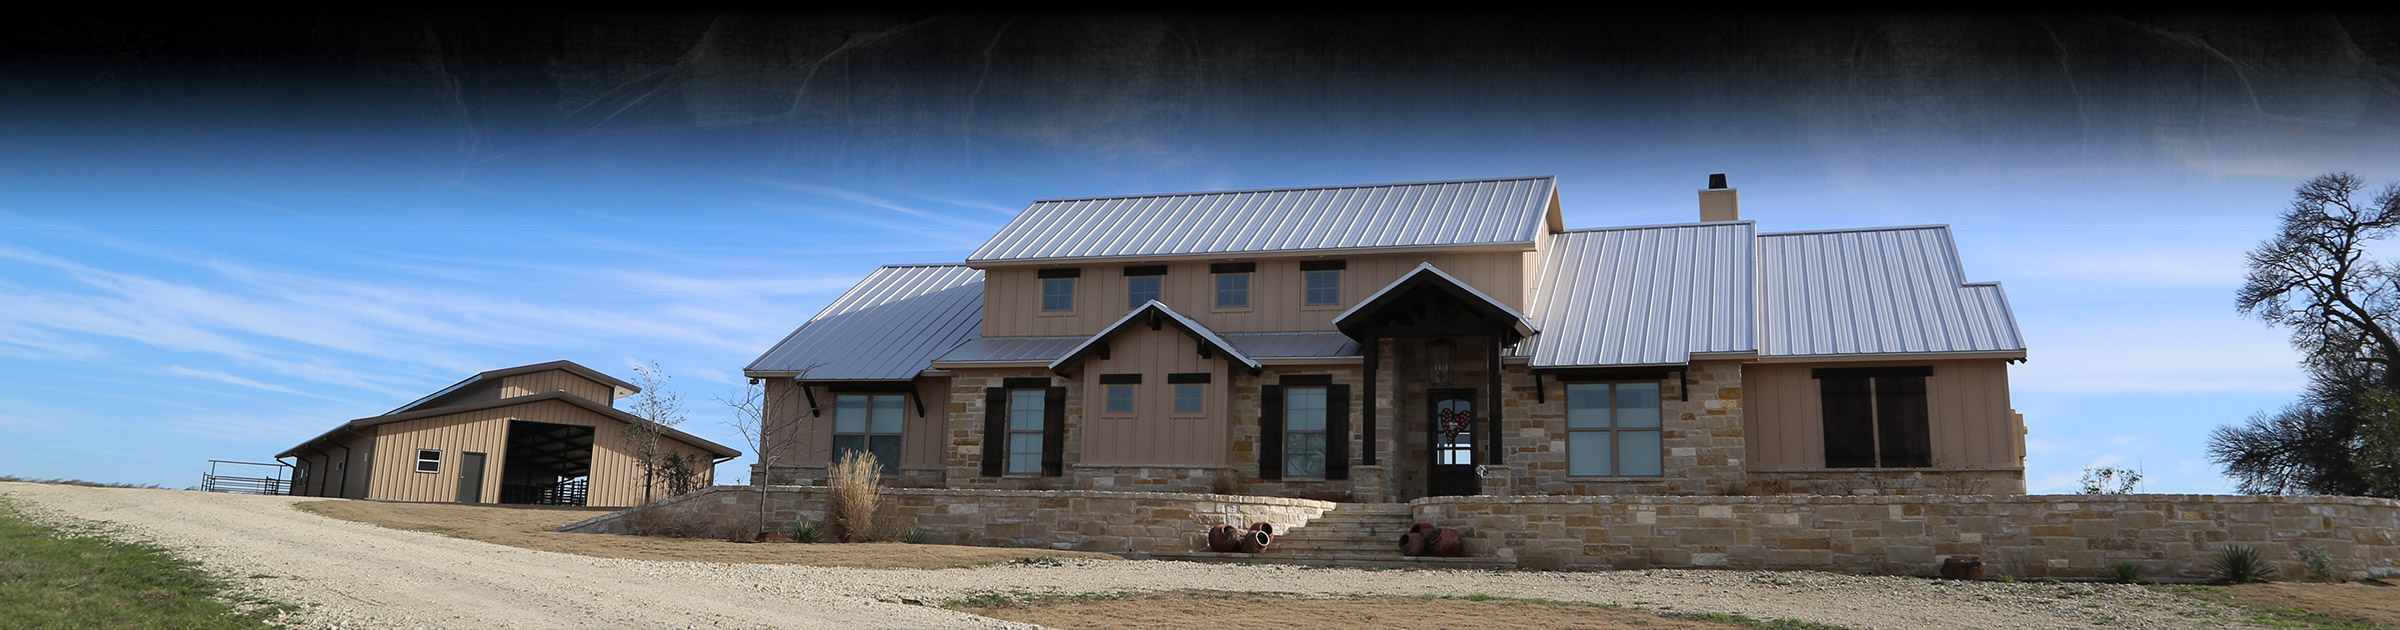 Brilliant Metal Roofing Gallery Pioneer Steel Pipe Central Texas Beutiful Home Inspiration Truamahrainfo